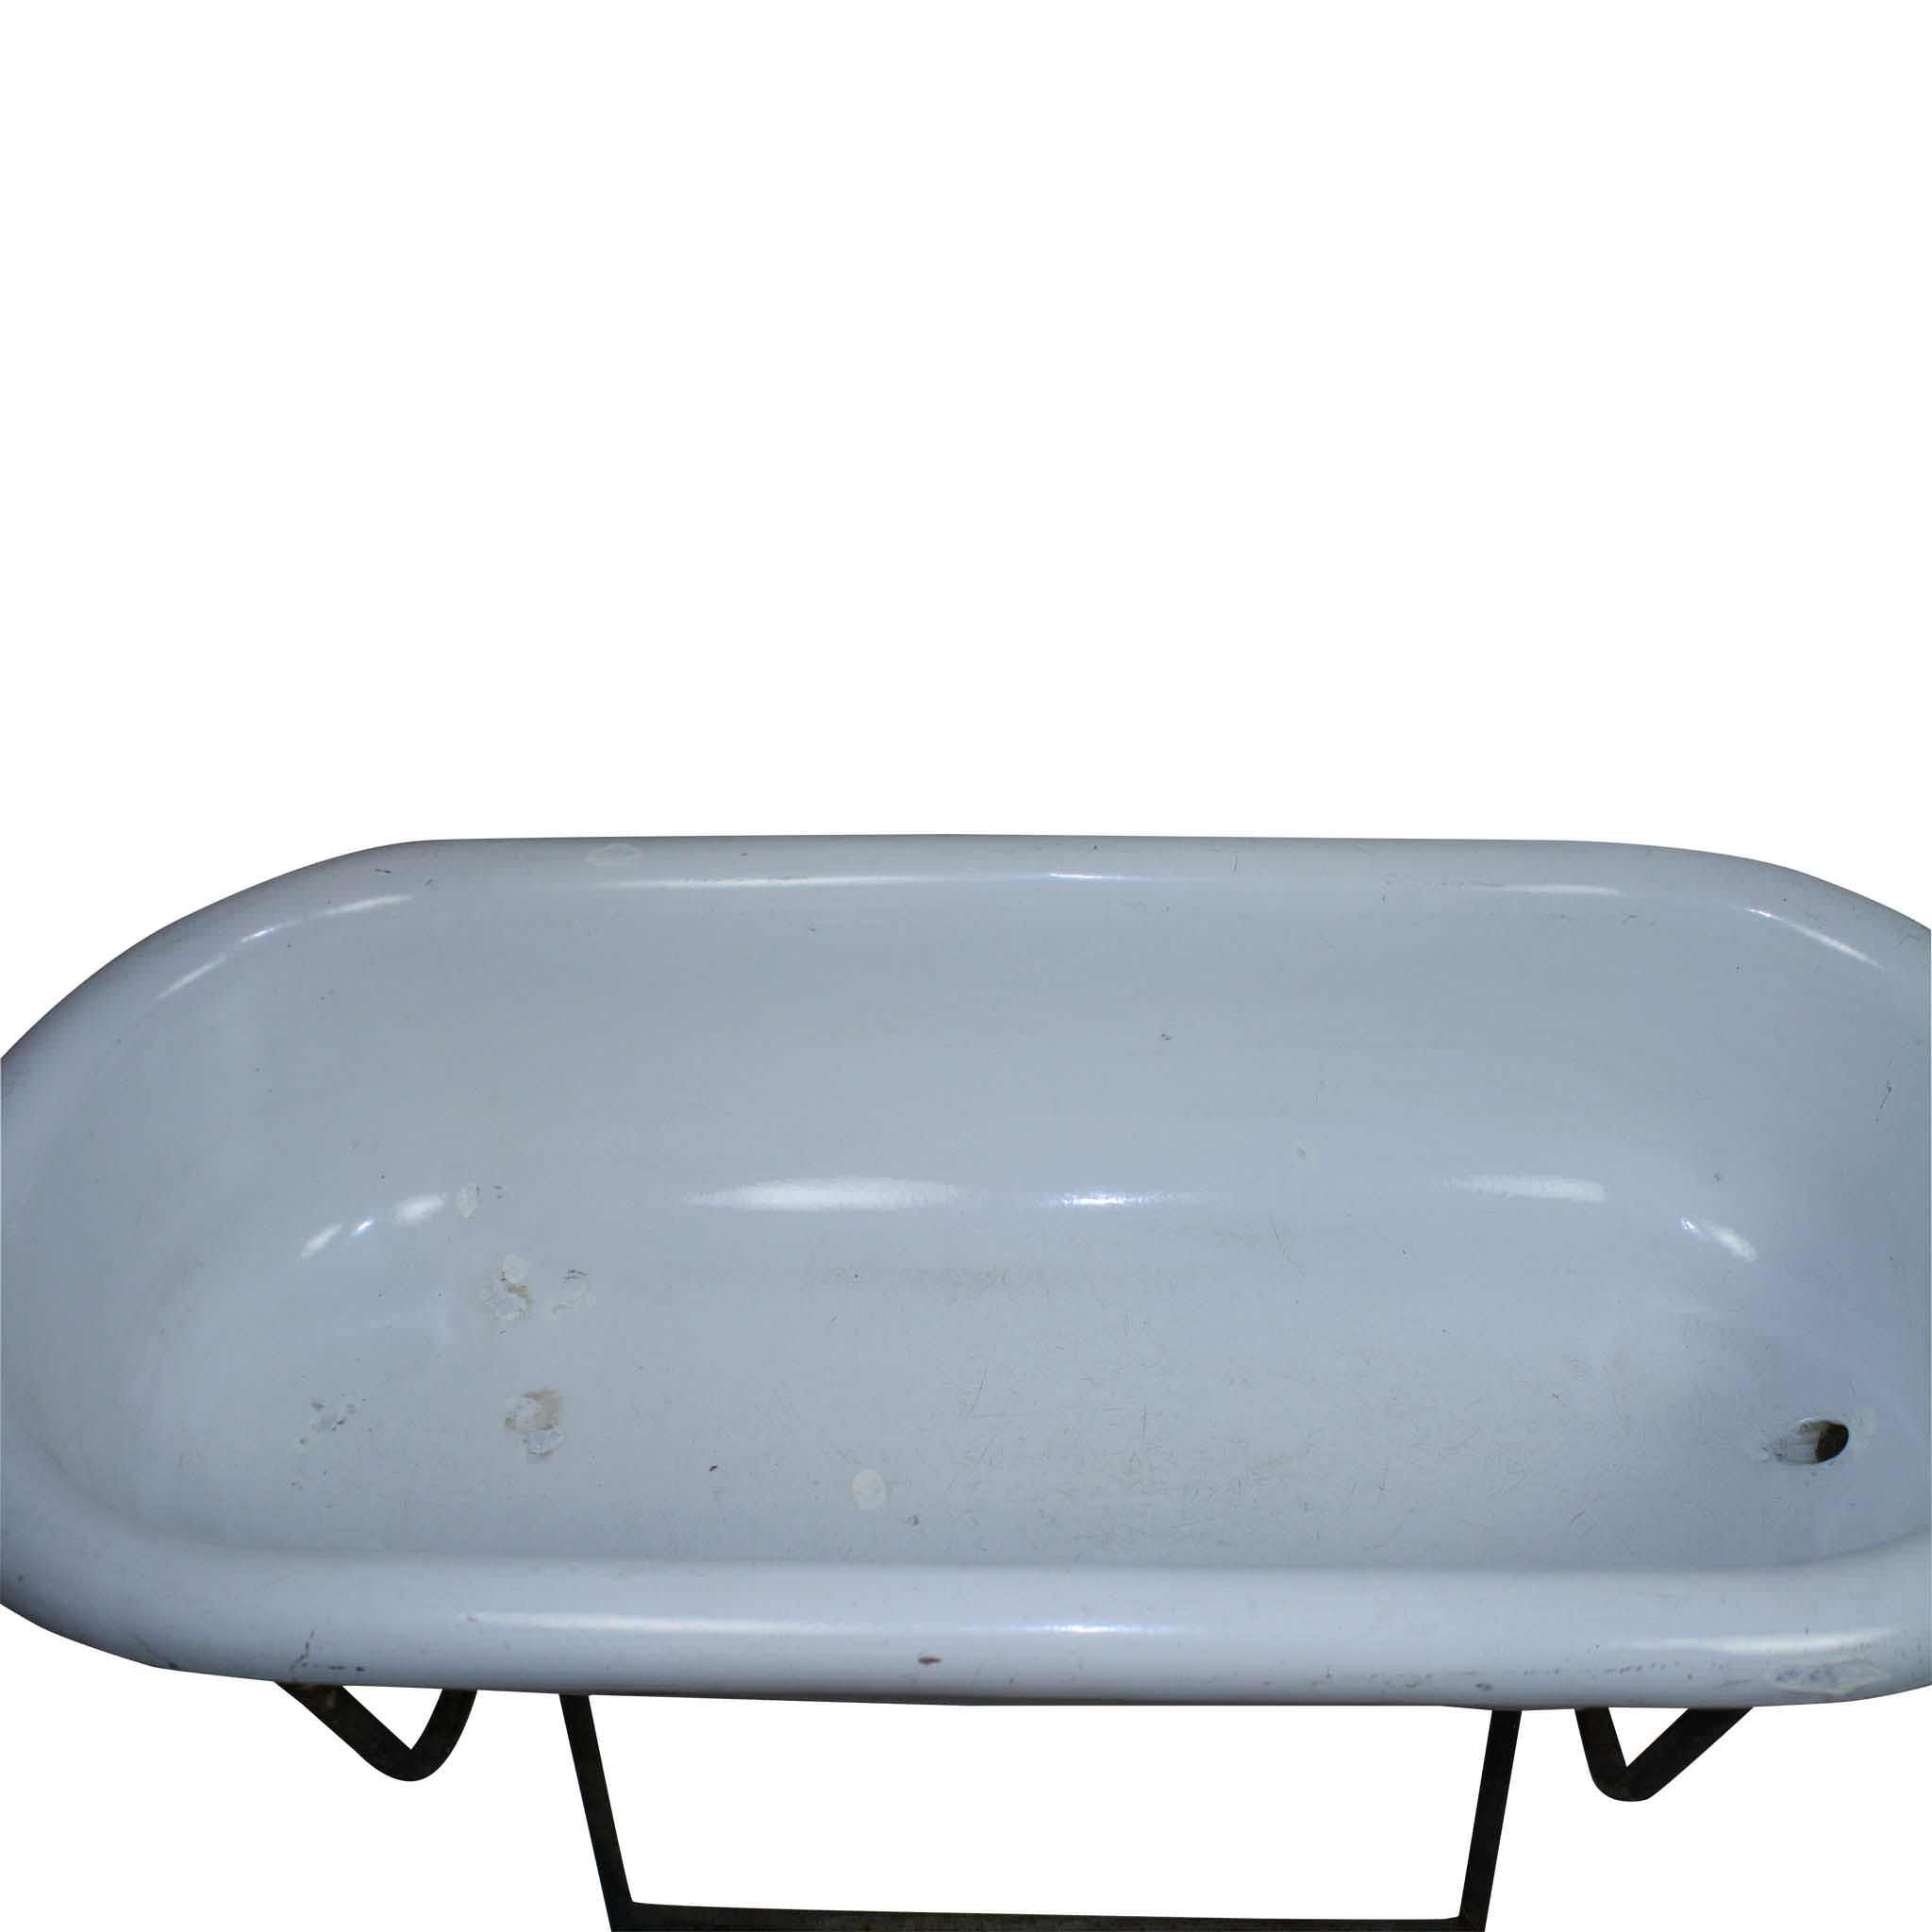 Enamel Bathtub with Stand - Ski Country Antiques & Home